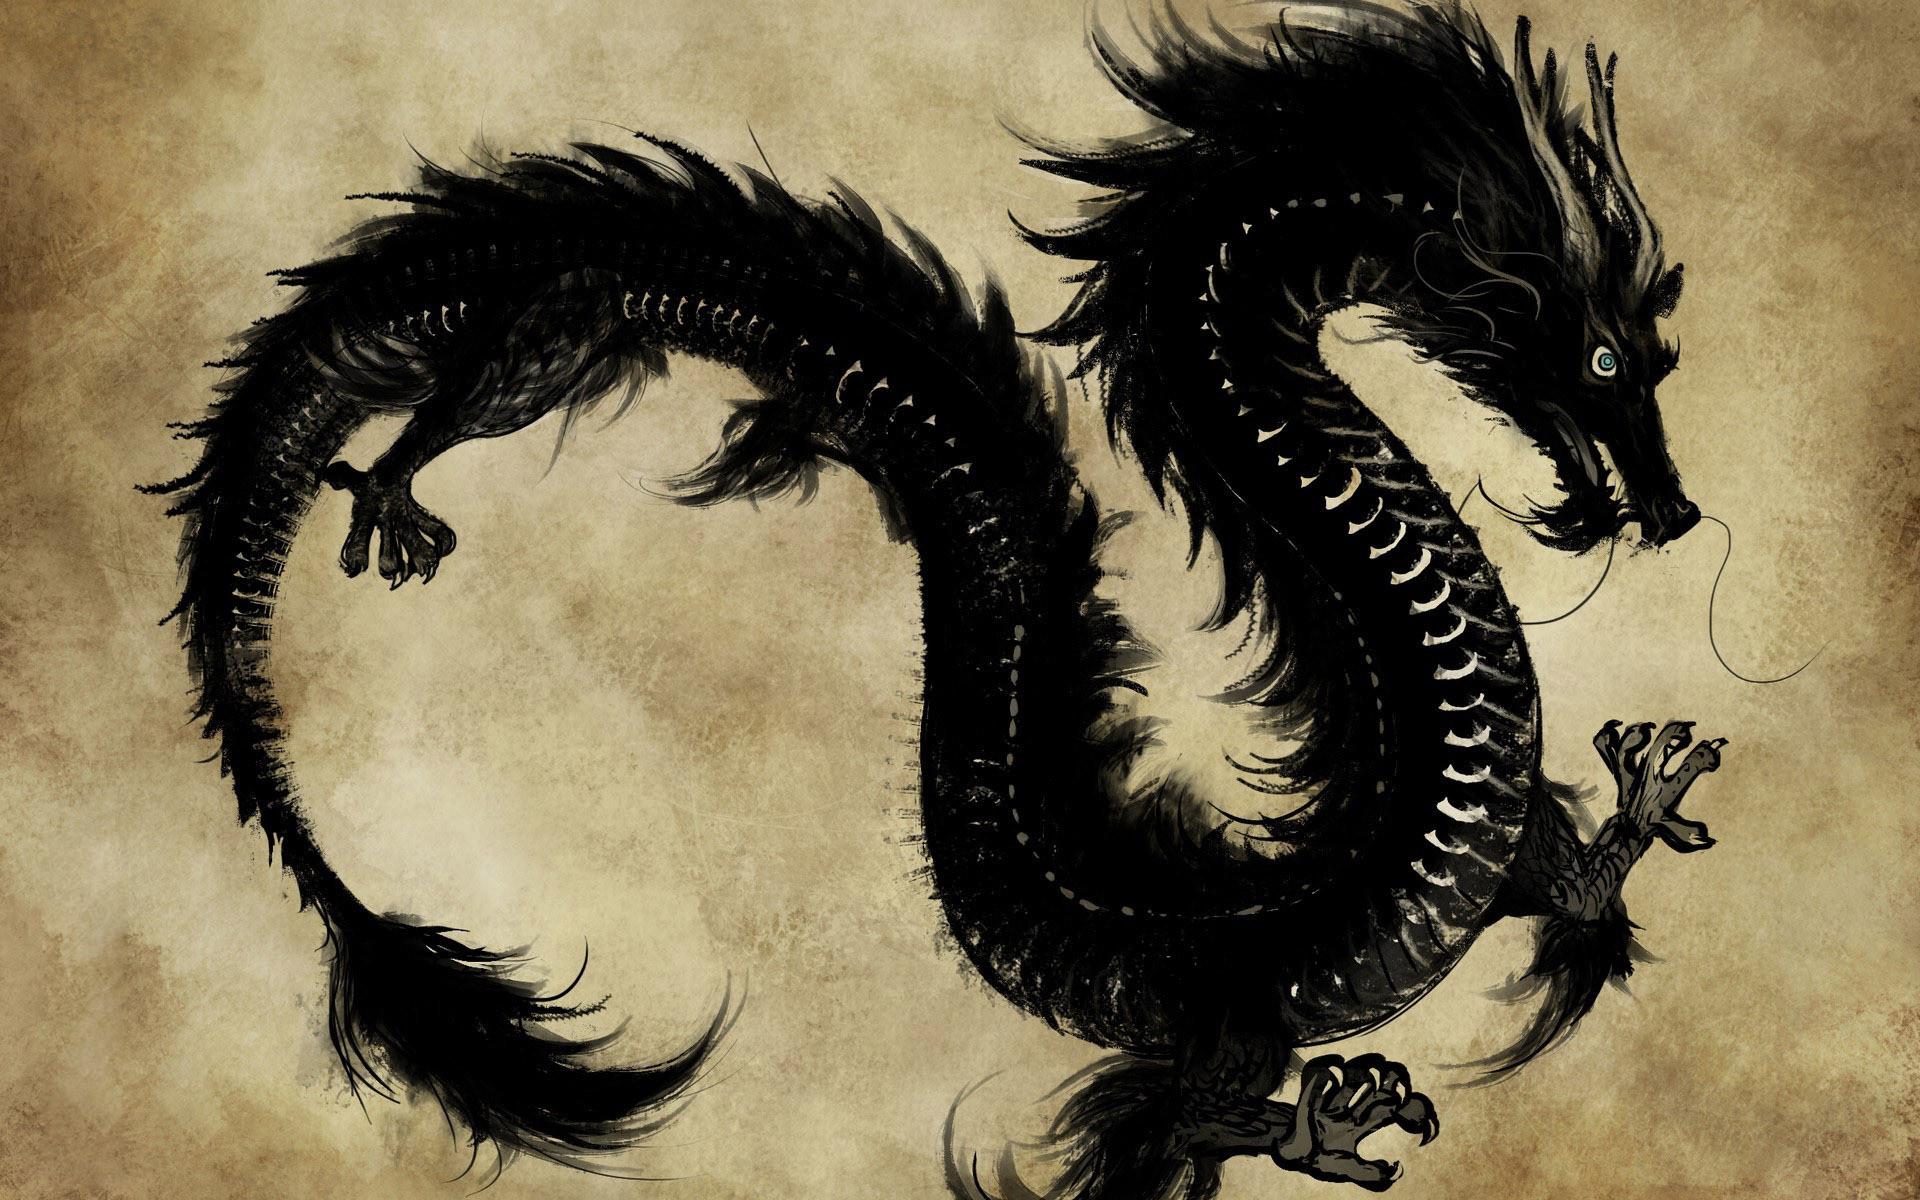 Chinese dragon totem iPad Wallpaper Download   iPhone Wallpapers   Adorable  Wallpapers   Pinterest   Chinese dragon, Dragons and Wallpaper